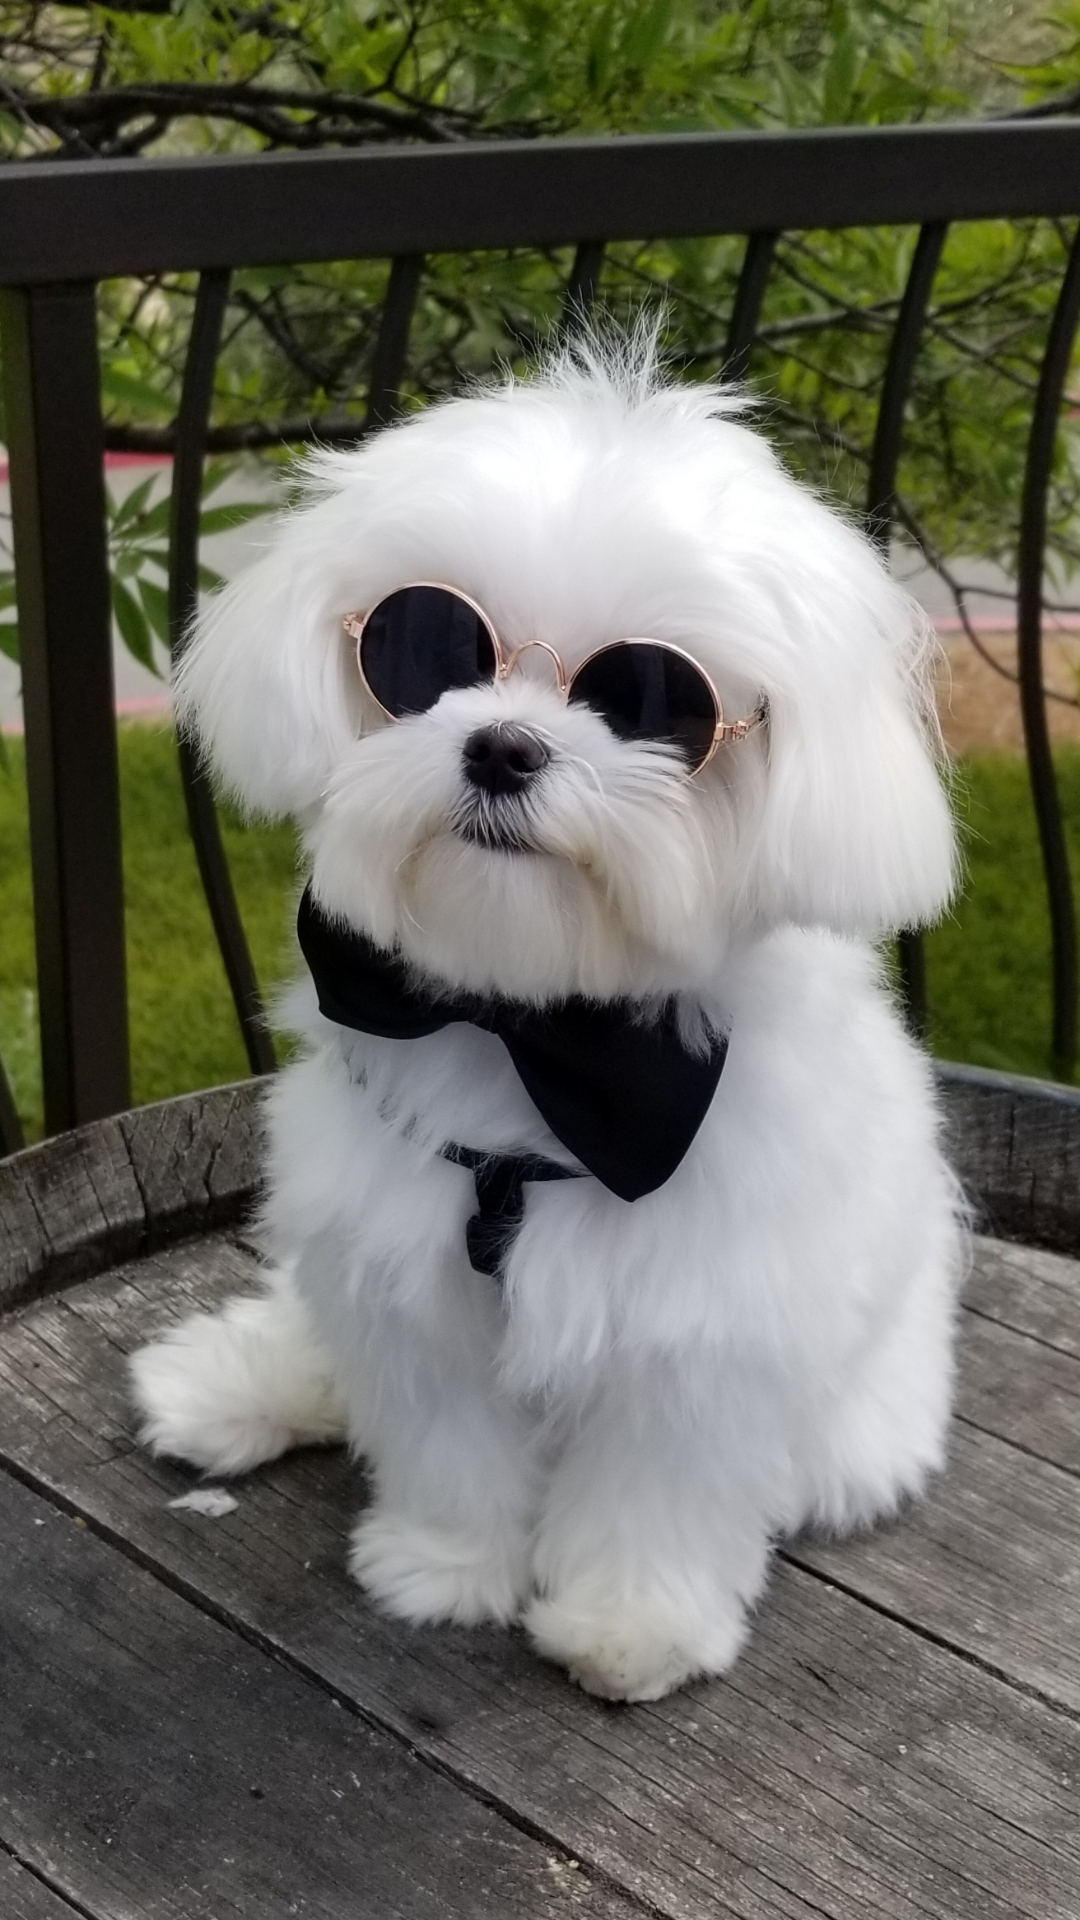 Ripple the Maltese